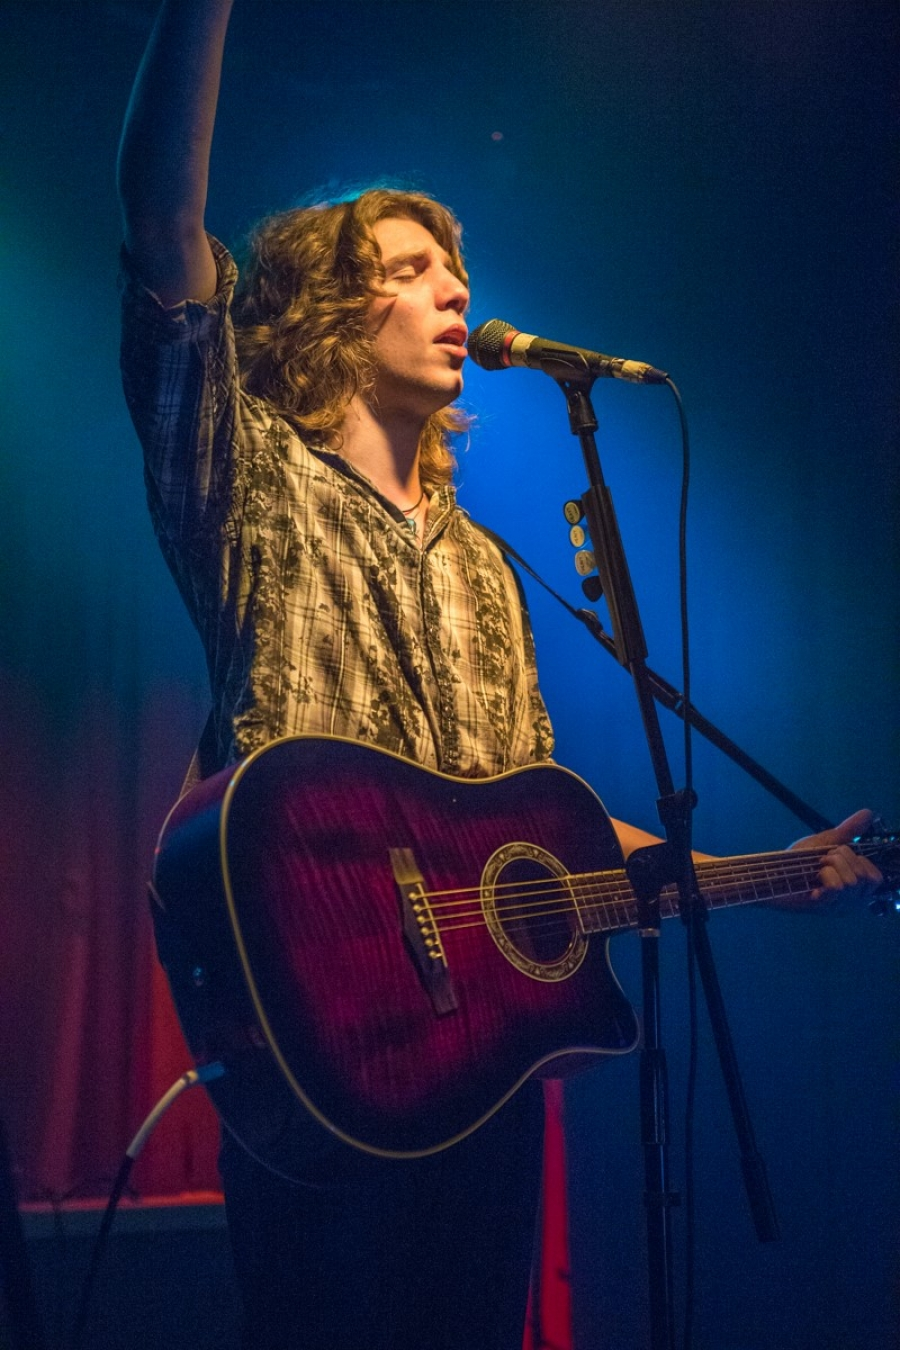 Jesse Kinch Closes in on His Dream